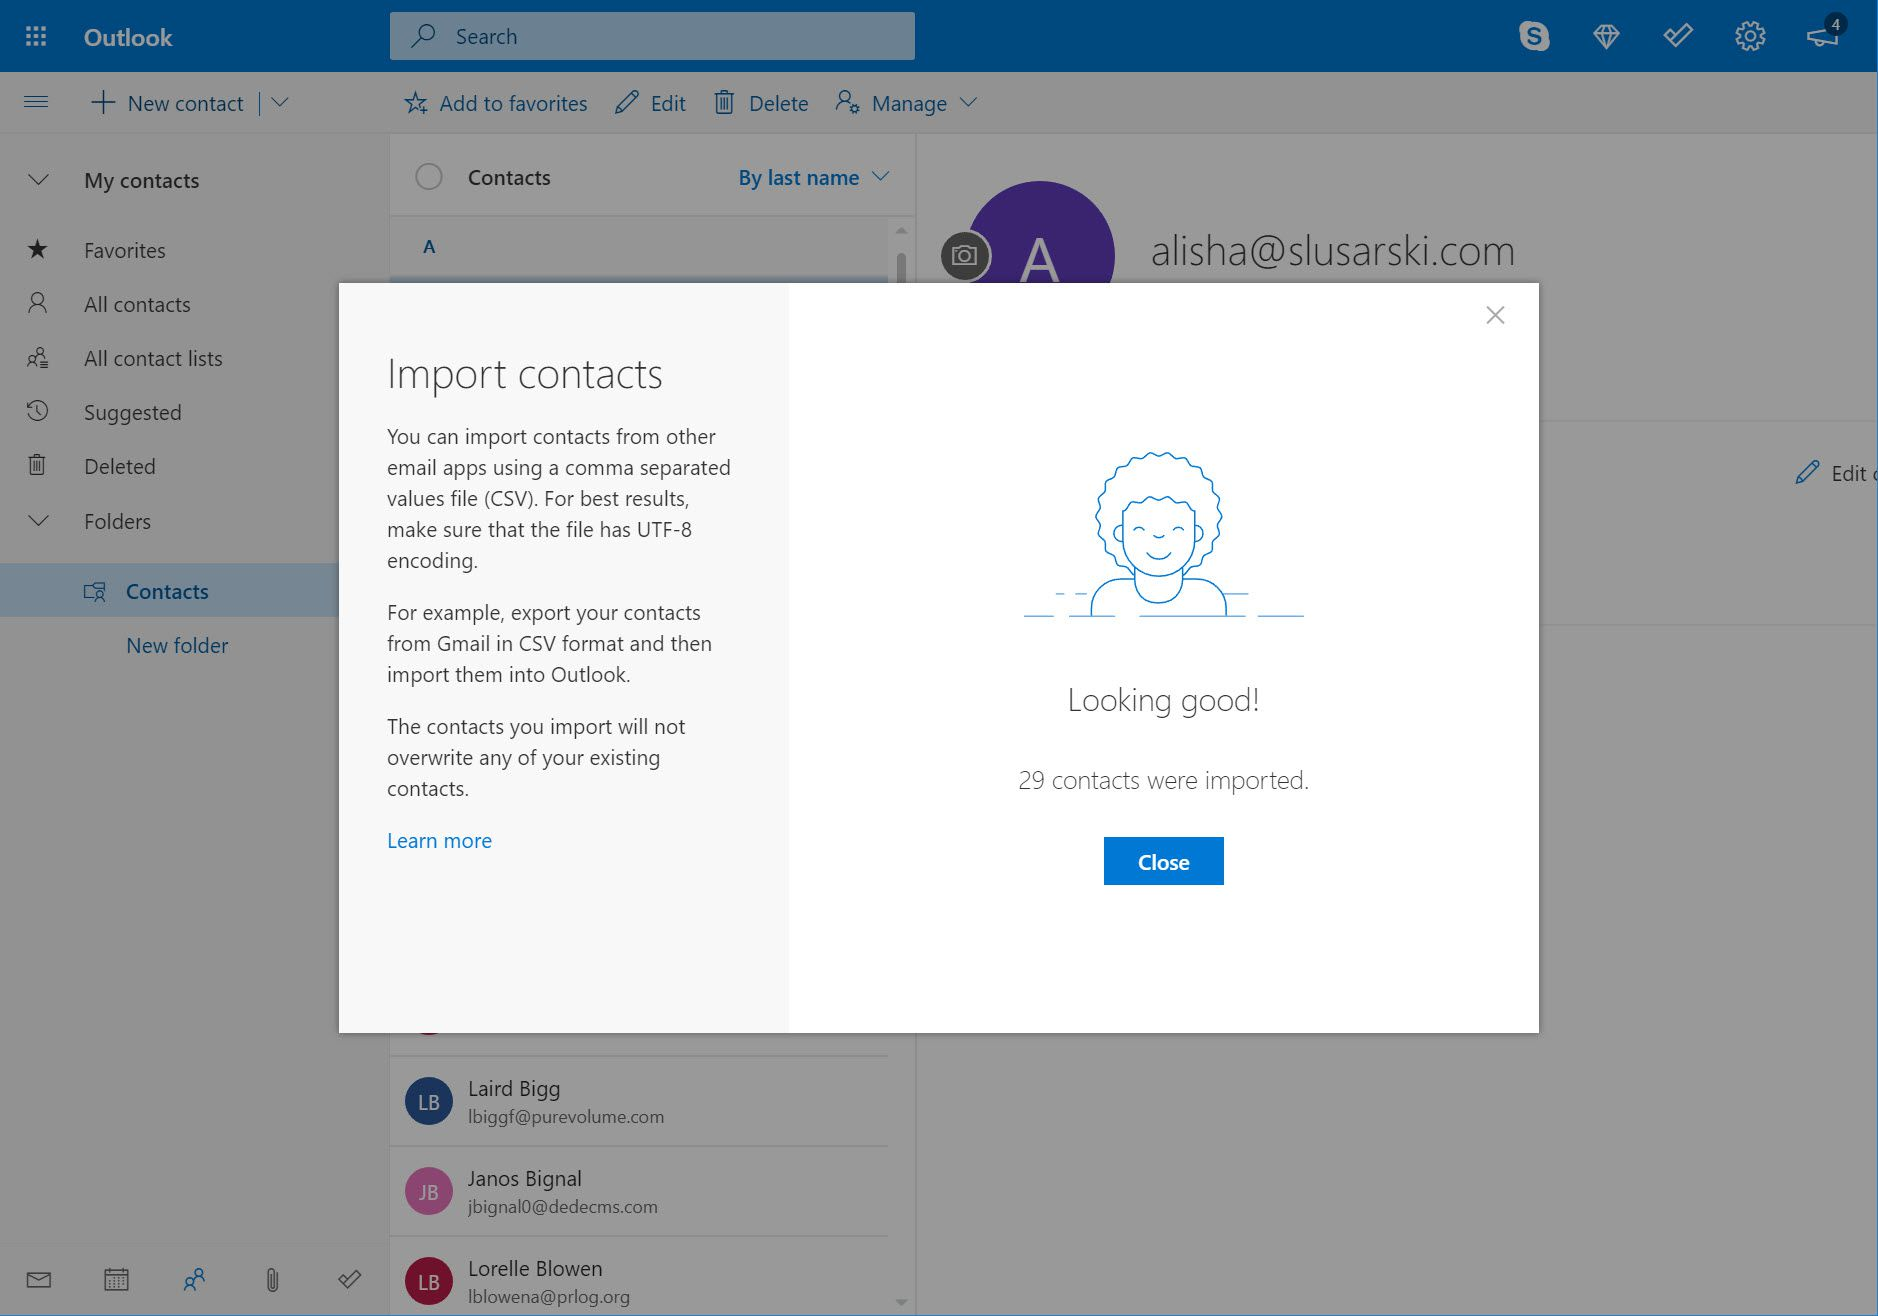 Import contacts complete screen in Outlook.com